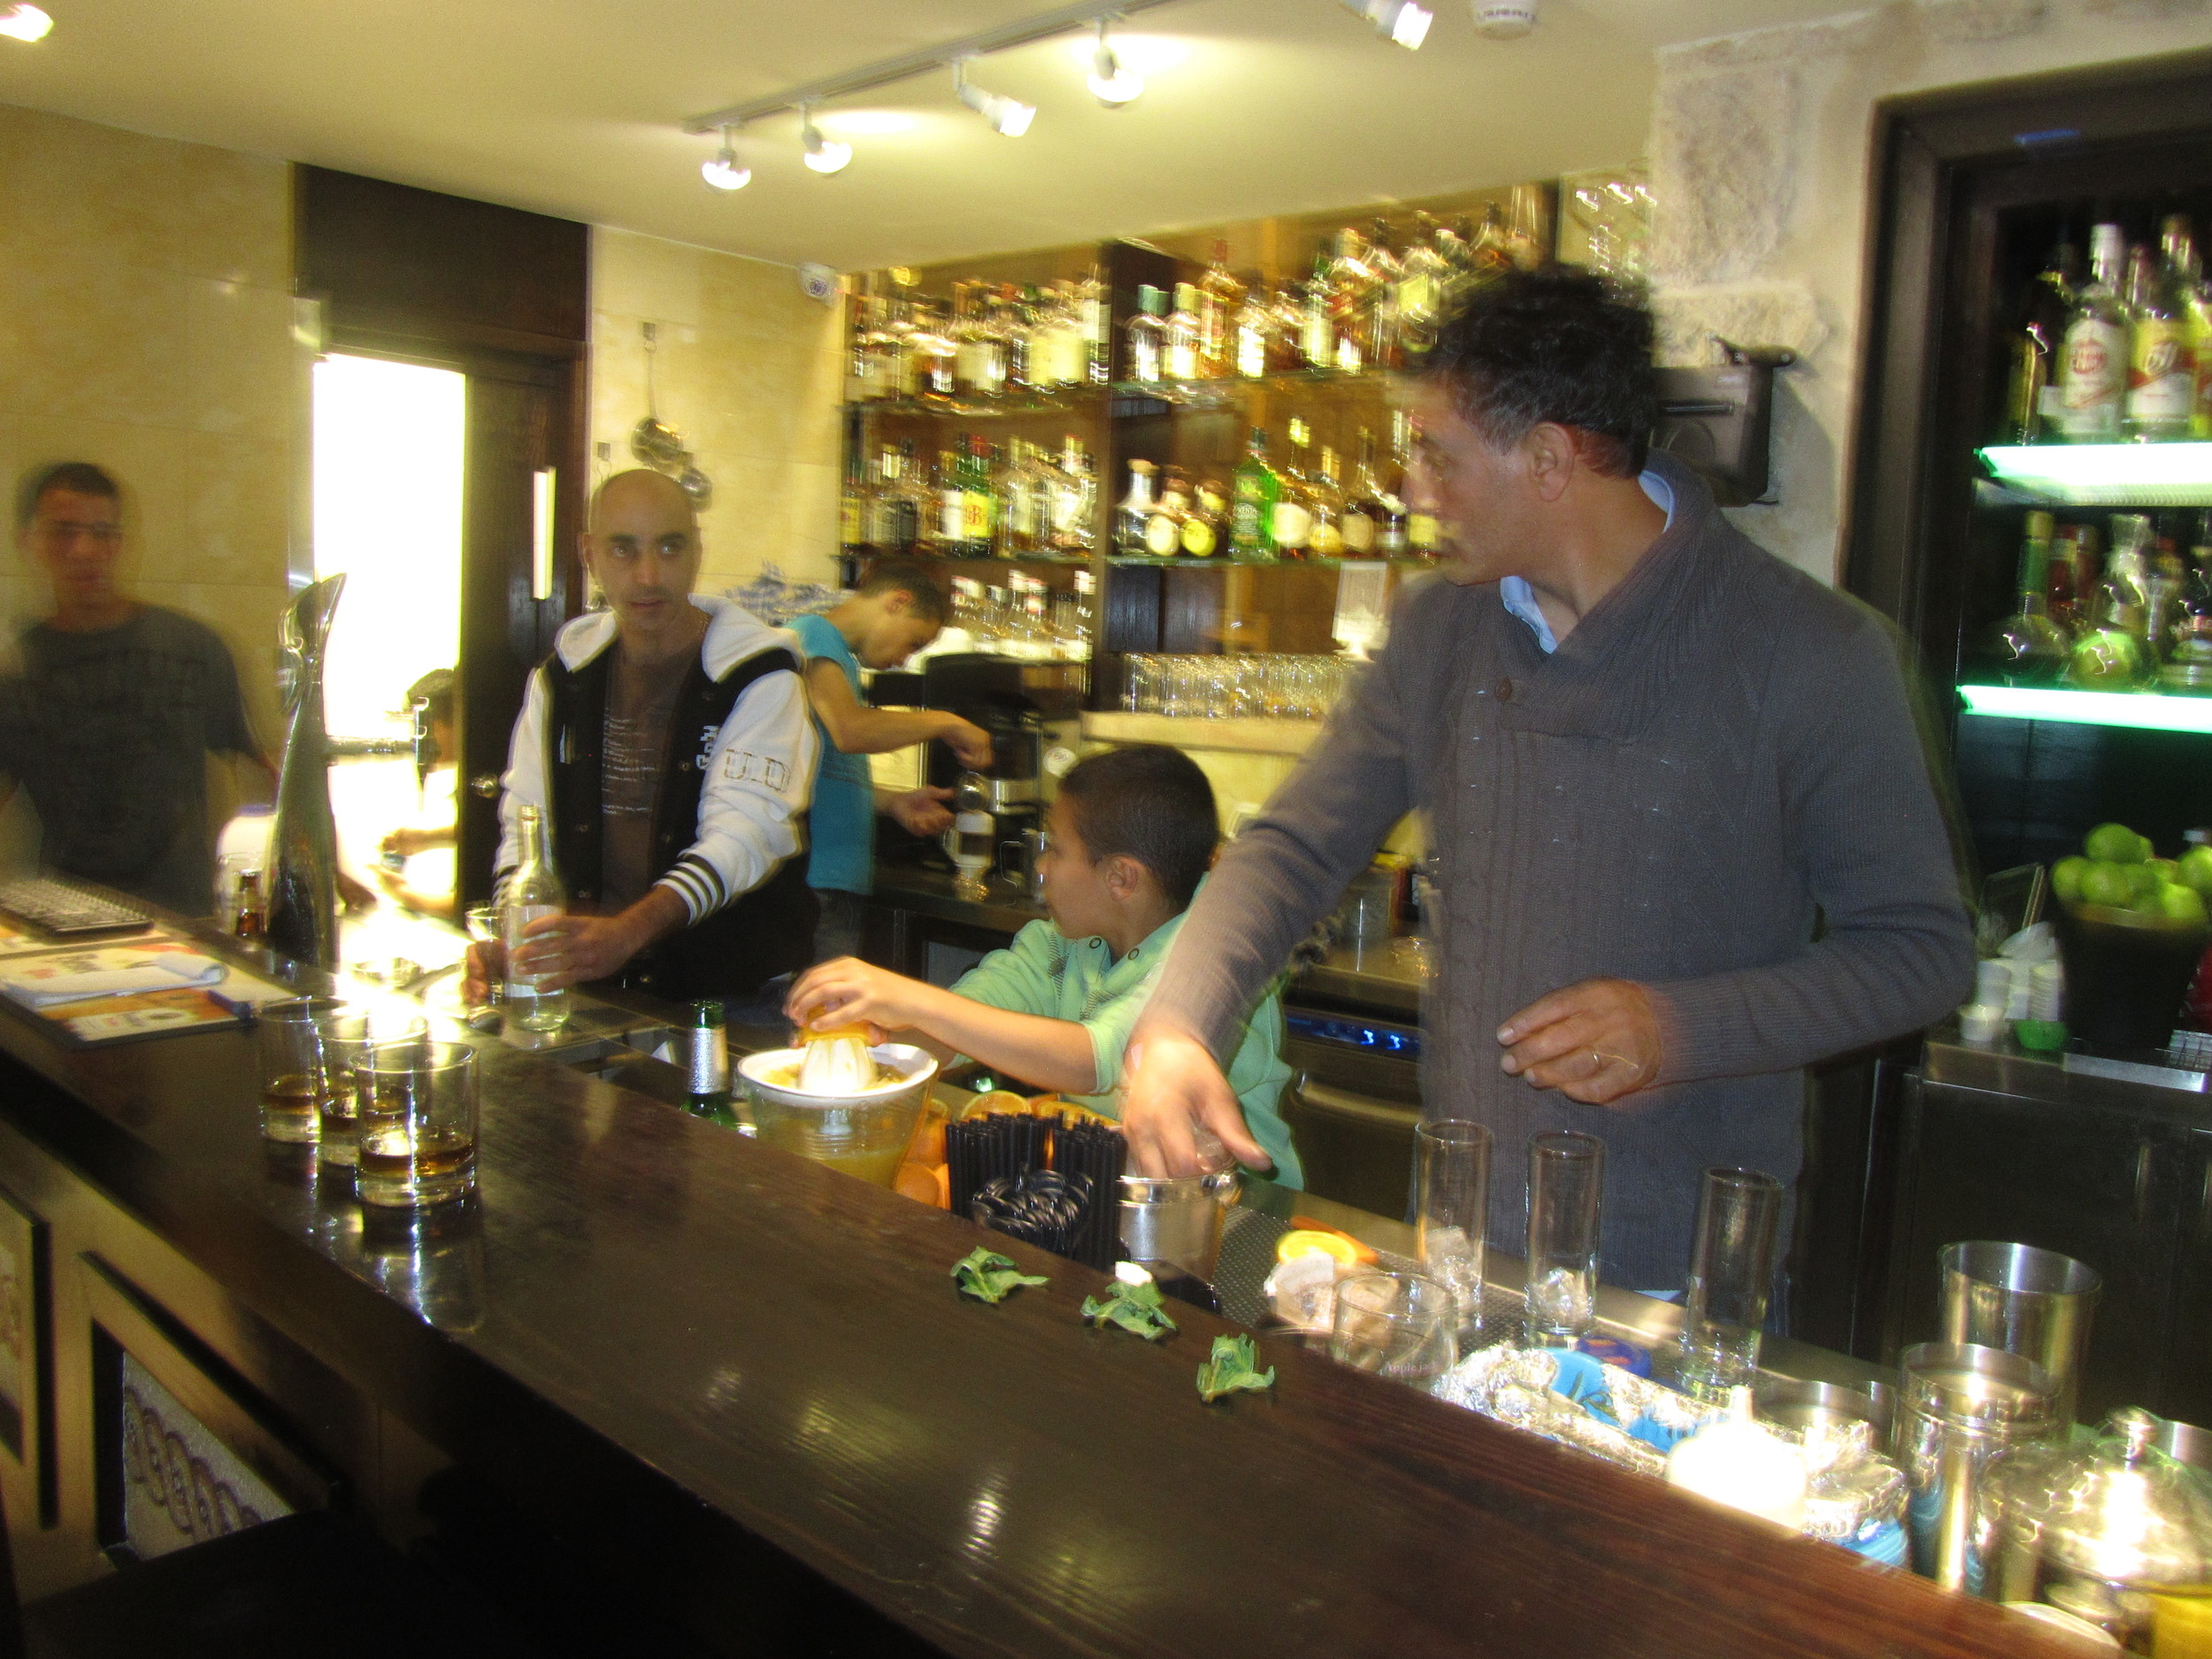 The extended Katanasho family working together to run their beautiful restaurant, Versavee in the Old City